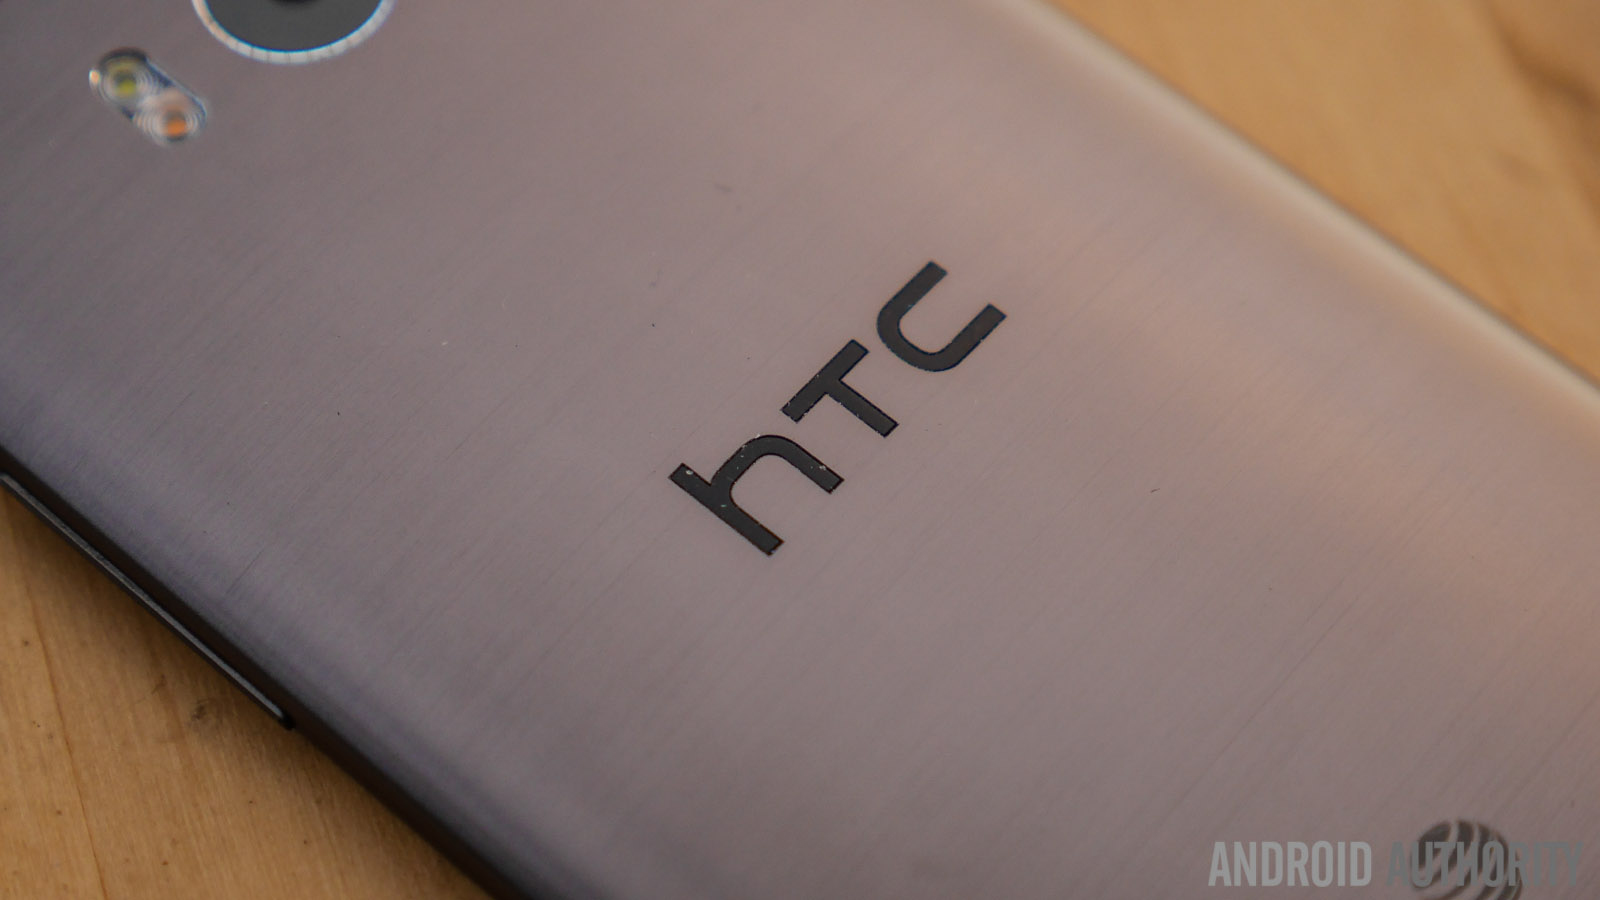 htc one m8 outdoors (10 of 17)